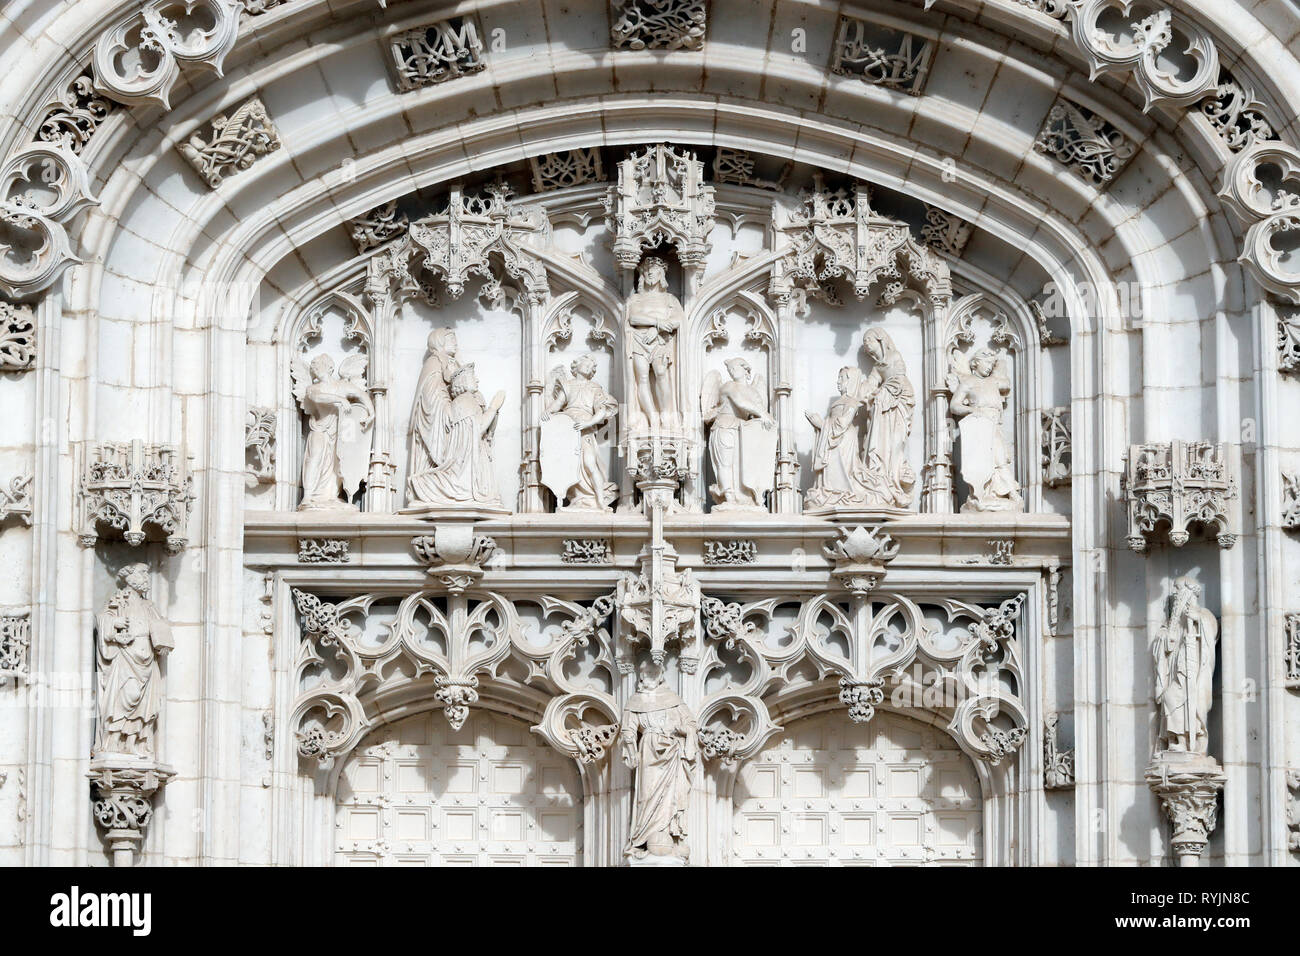 The royal monastery of Brou.  The church is a masterpiece of the Flamboyant Gothic style. Western portal. Bourg en Bresse. France. - Stock Image